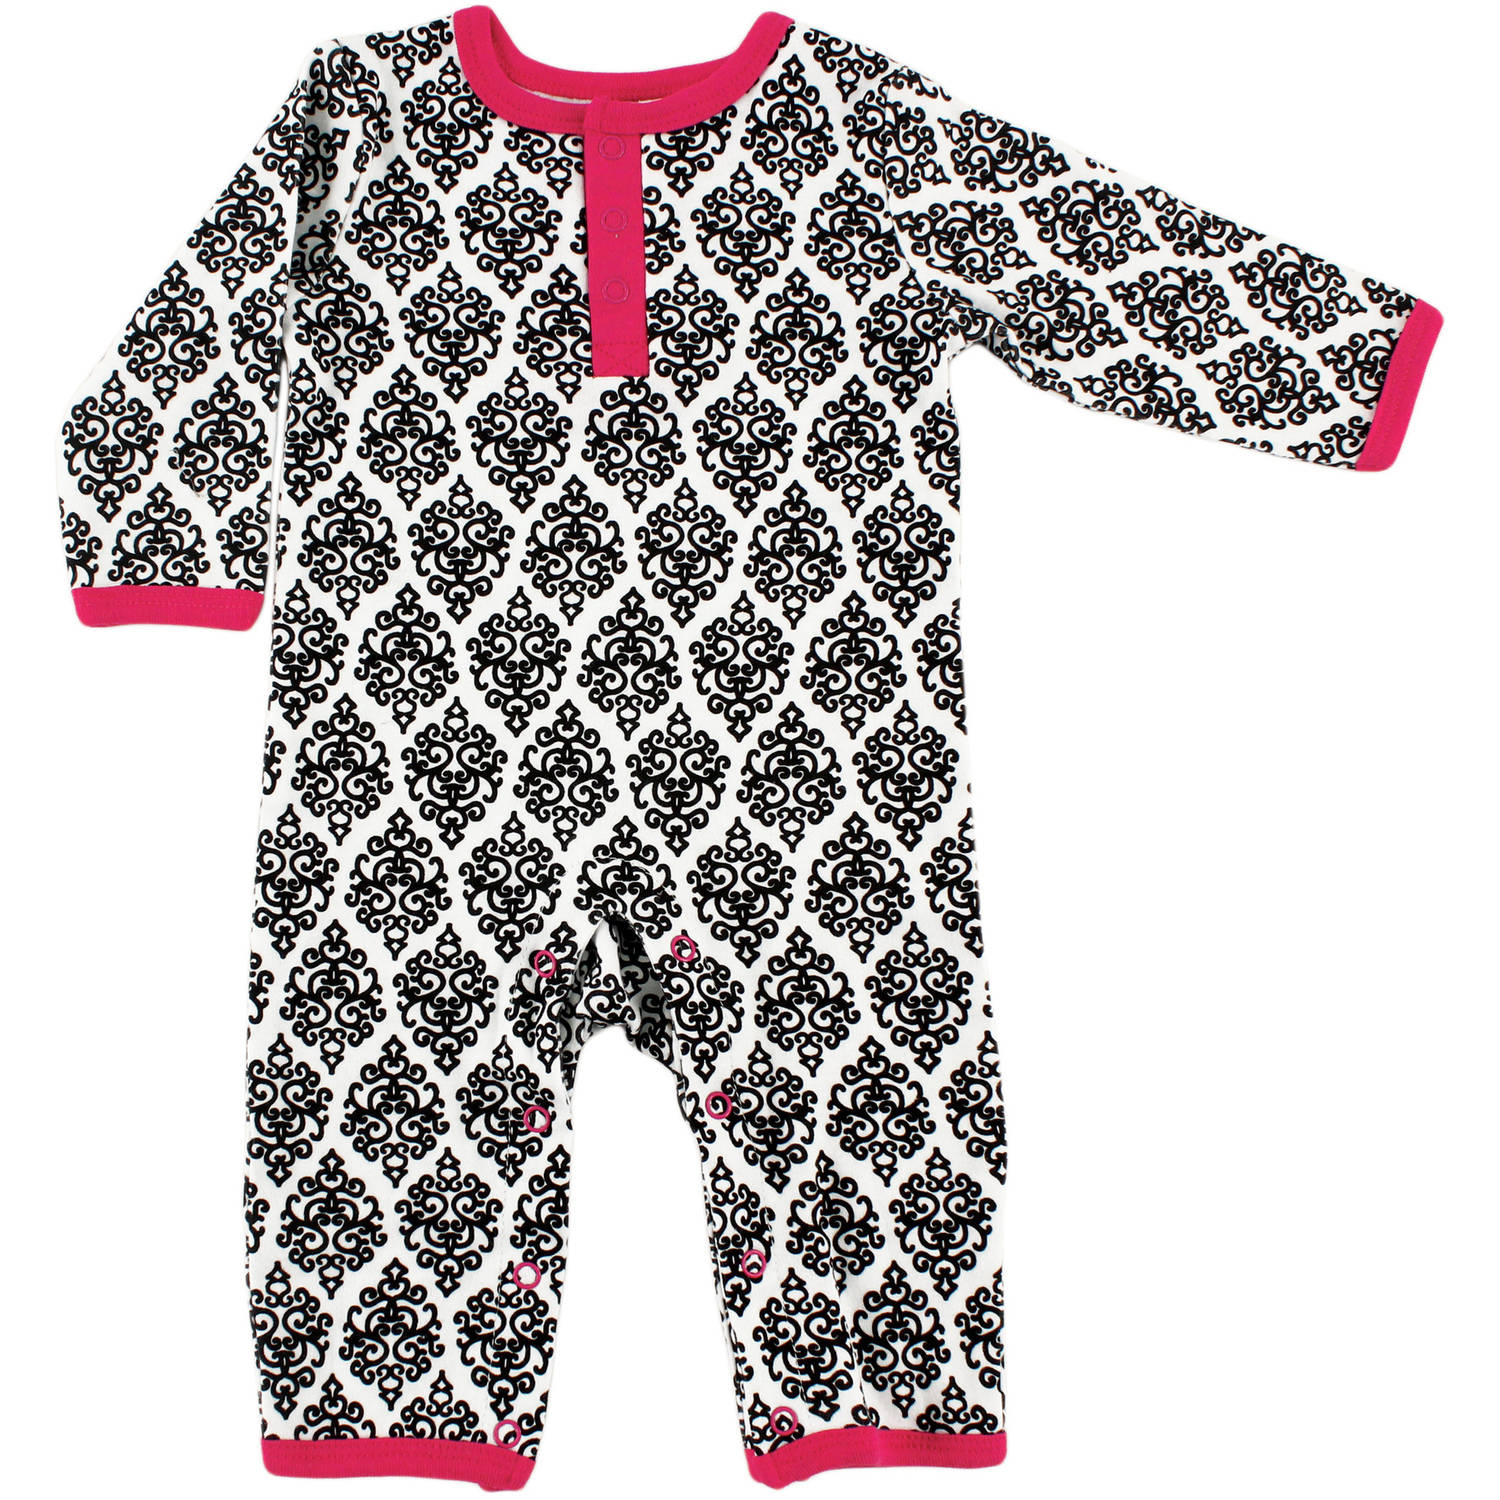 Yoga Sprout Newborn Baby Girls Union Suit - Damask